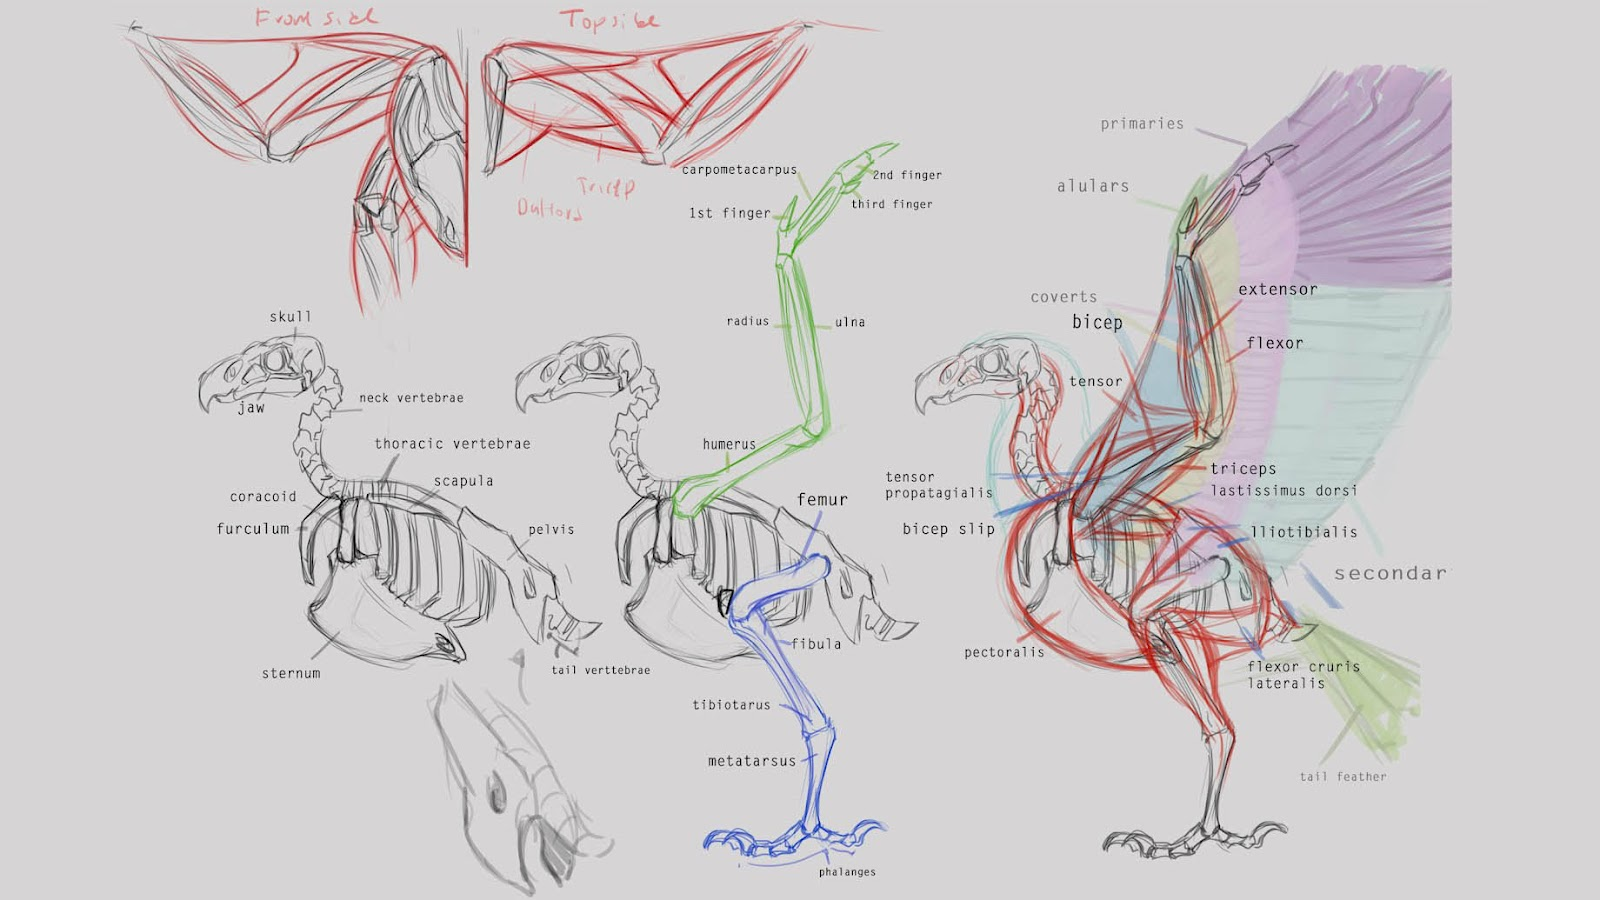 Bird Life Cycle Diagram Human Muscular System Labeled Bald Eagle Bone Structure Bing Images